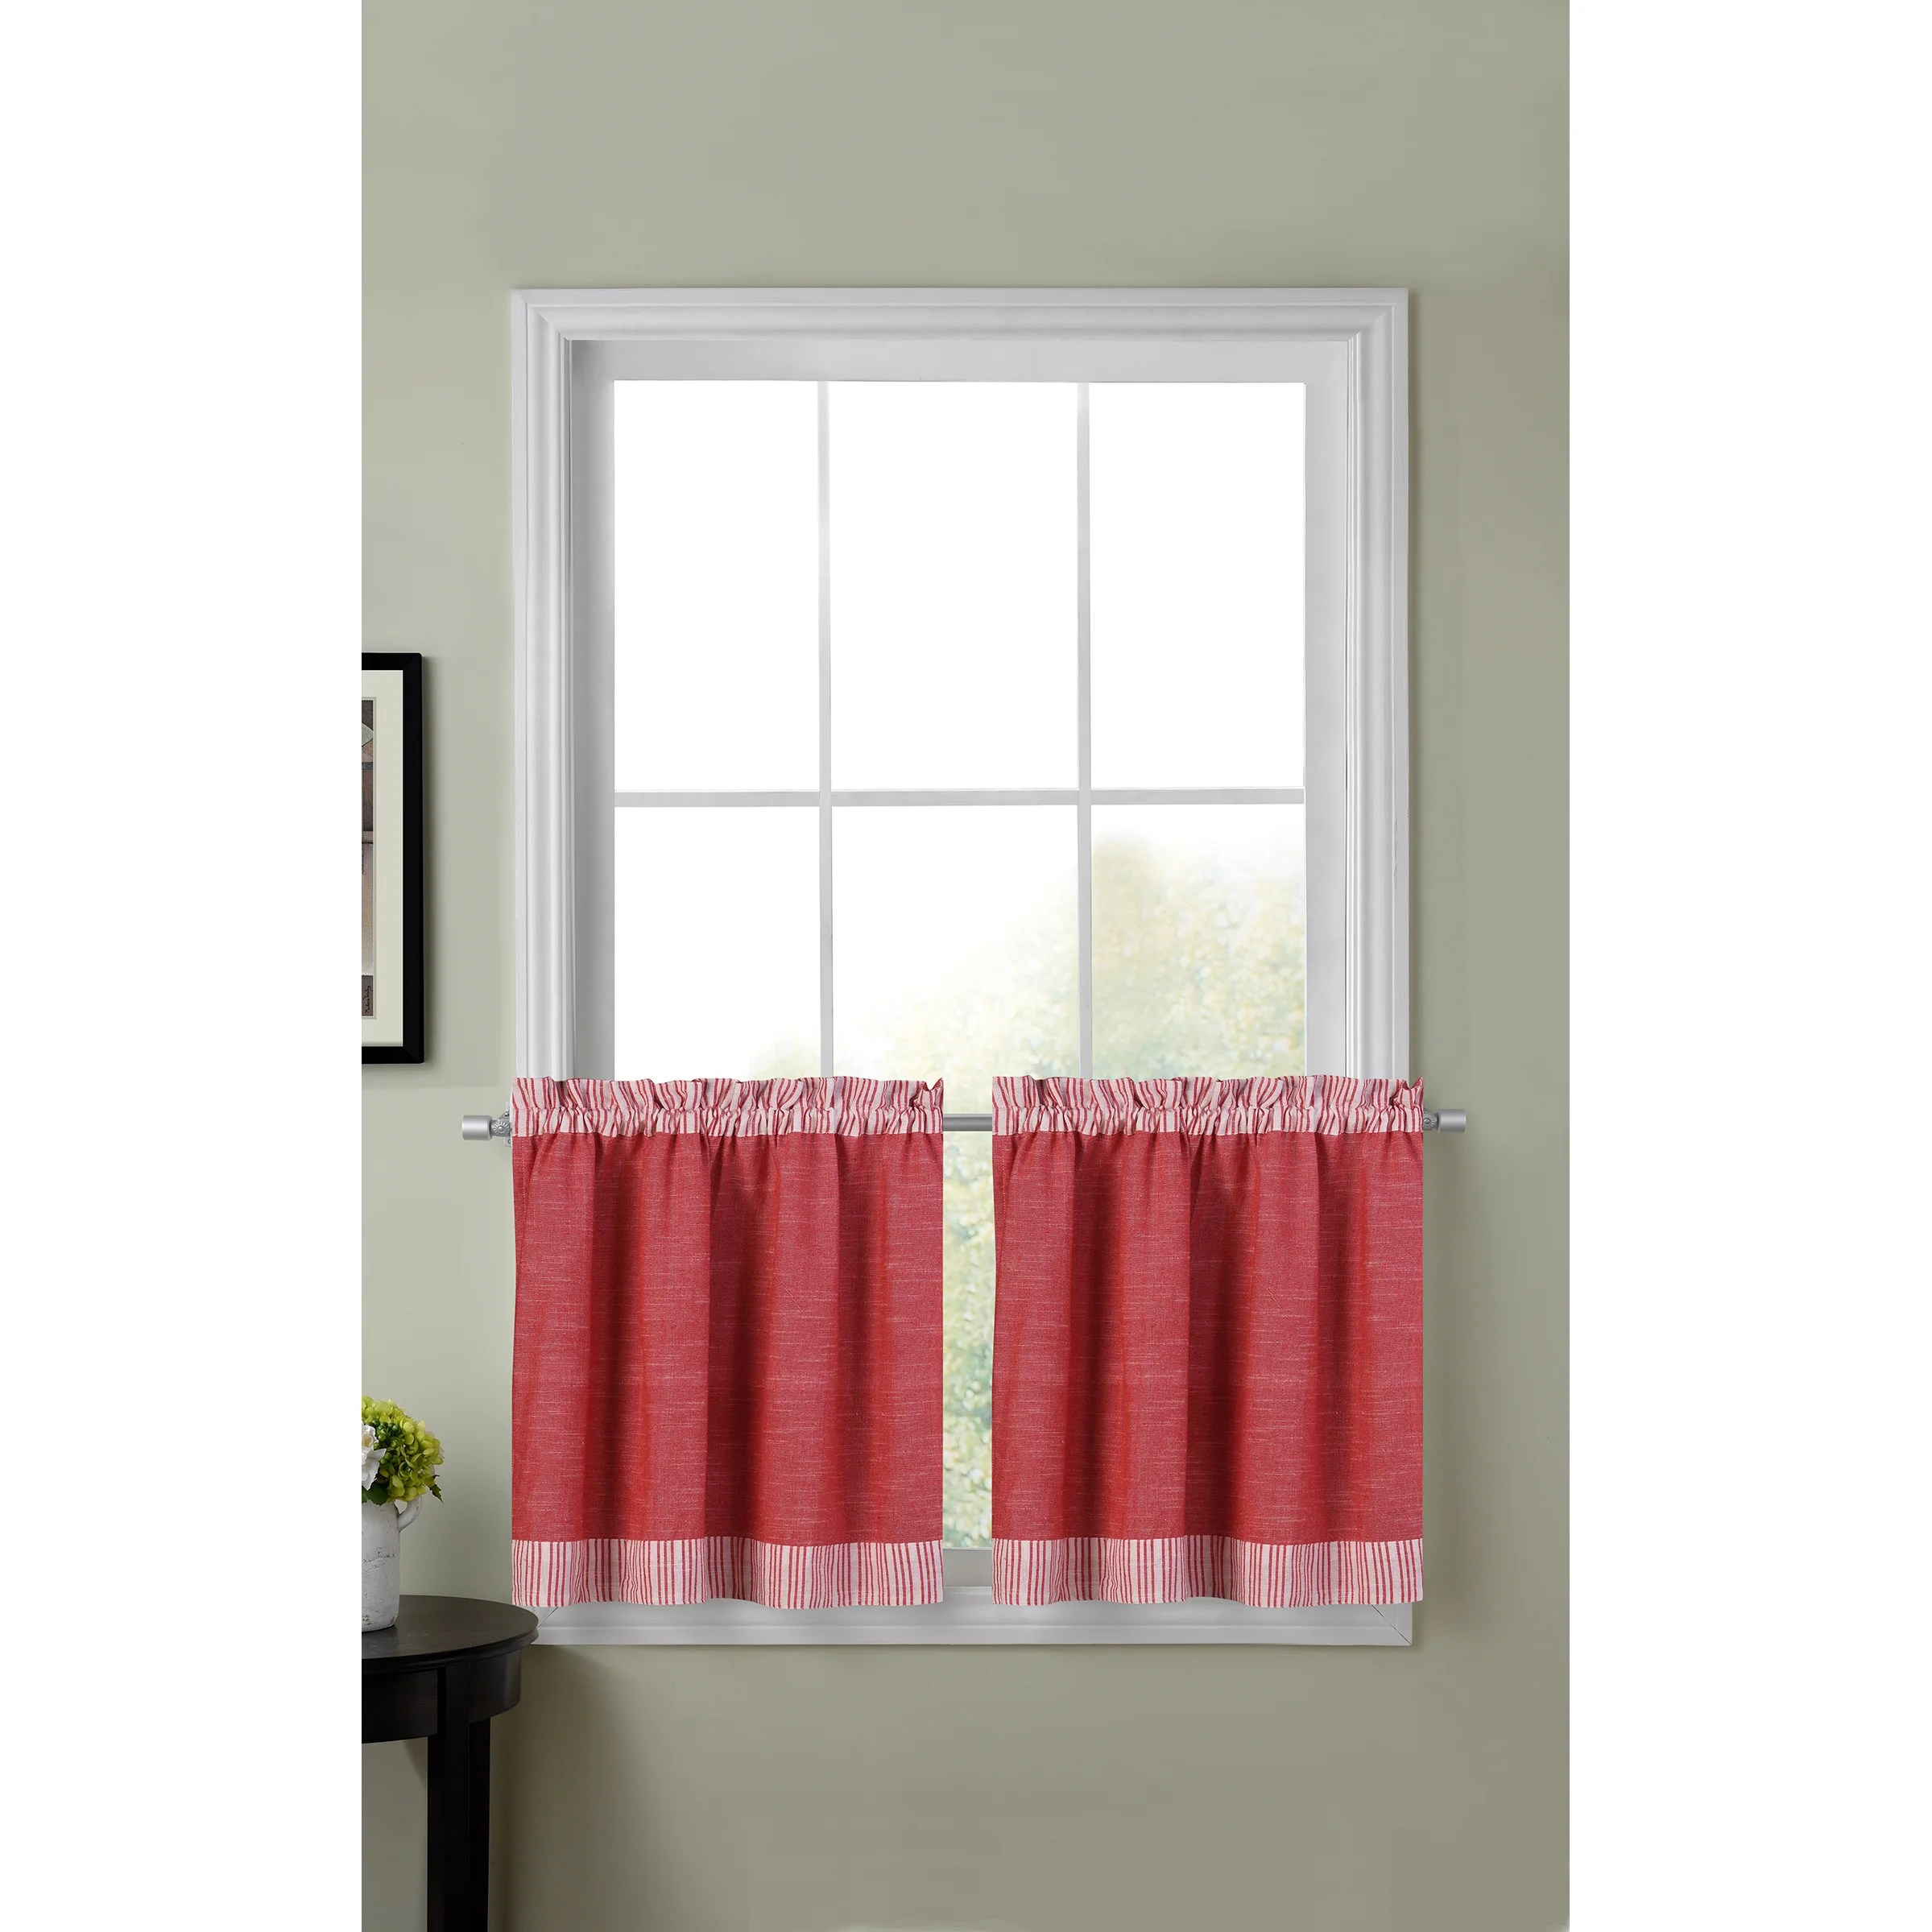 24 Inch Kitchen Curtains Amherst Color Block Kitchen Tier Curtains 30 Inch X 24 Inch